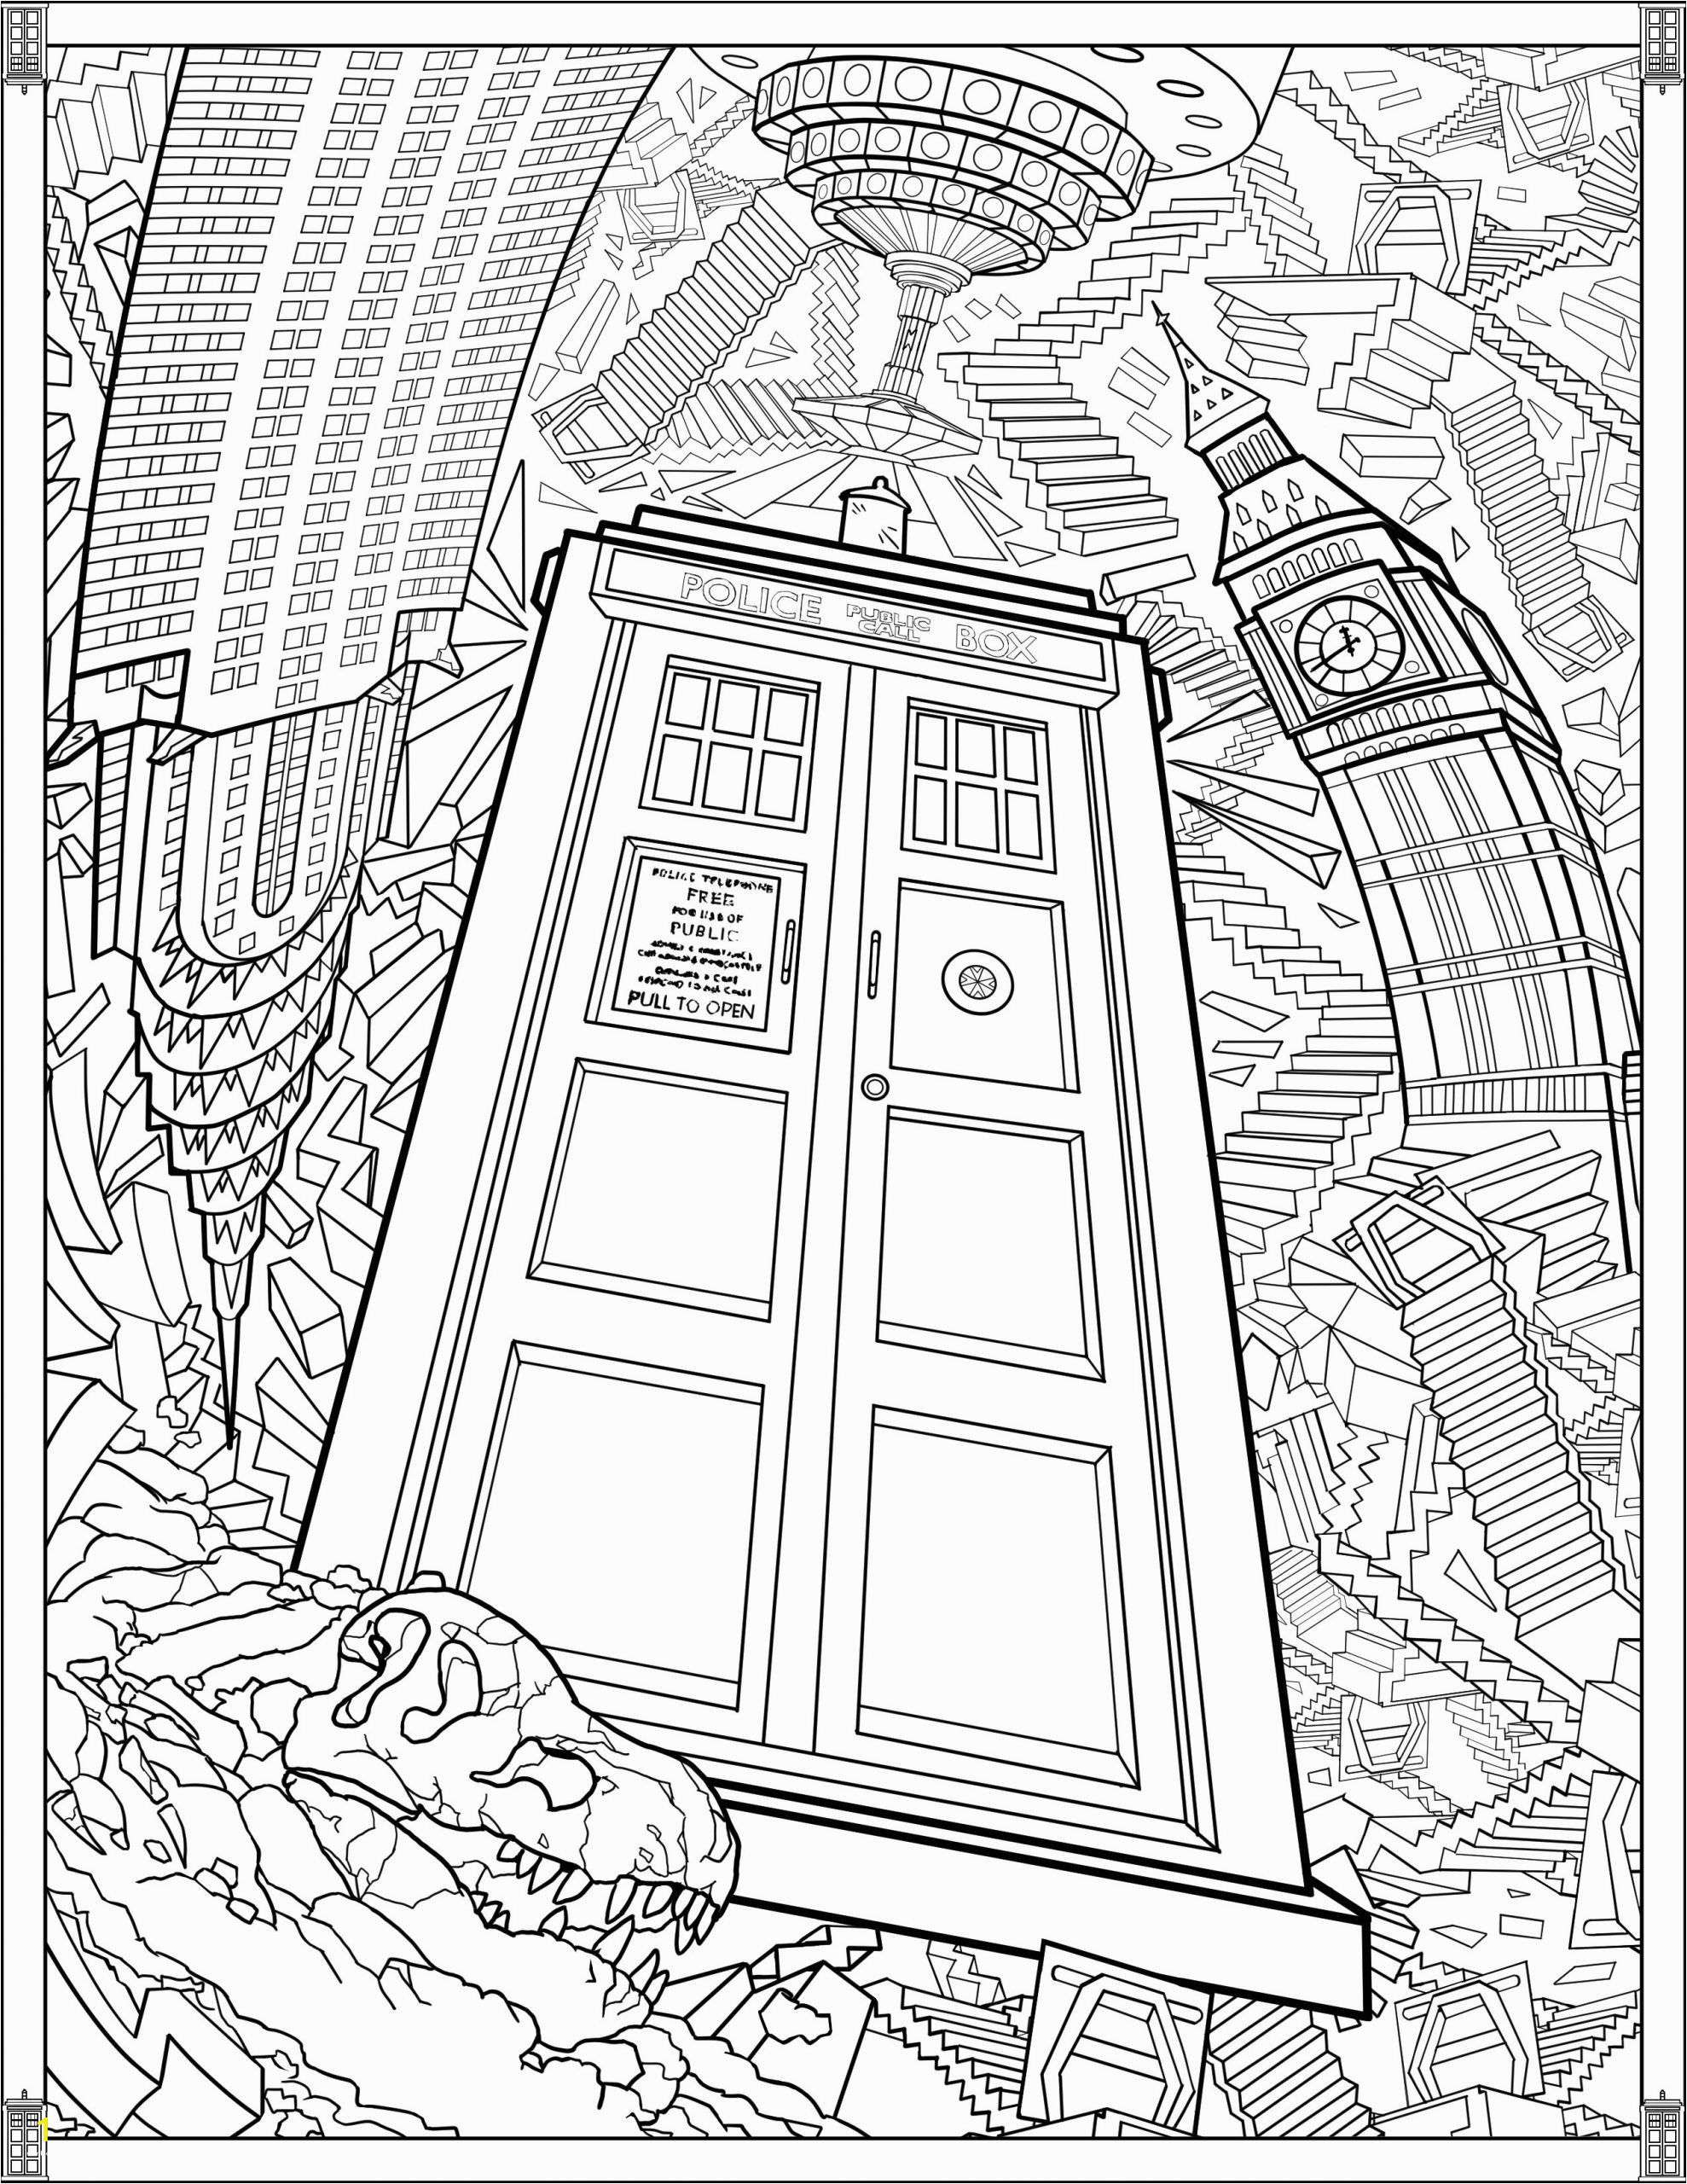 difficult coloring pages for adults fresh doctor who coloring pages best coloring pages for kids of difficult coloring pages for adults scaled